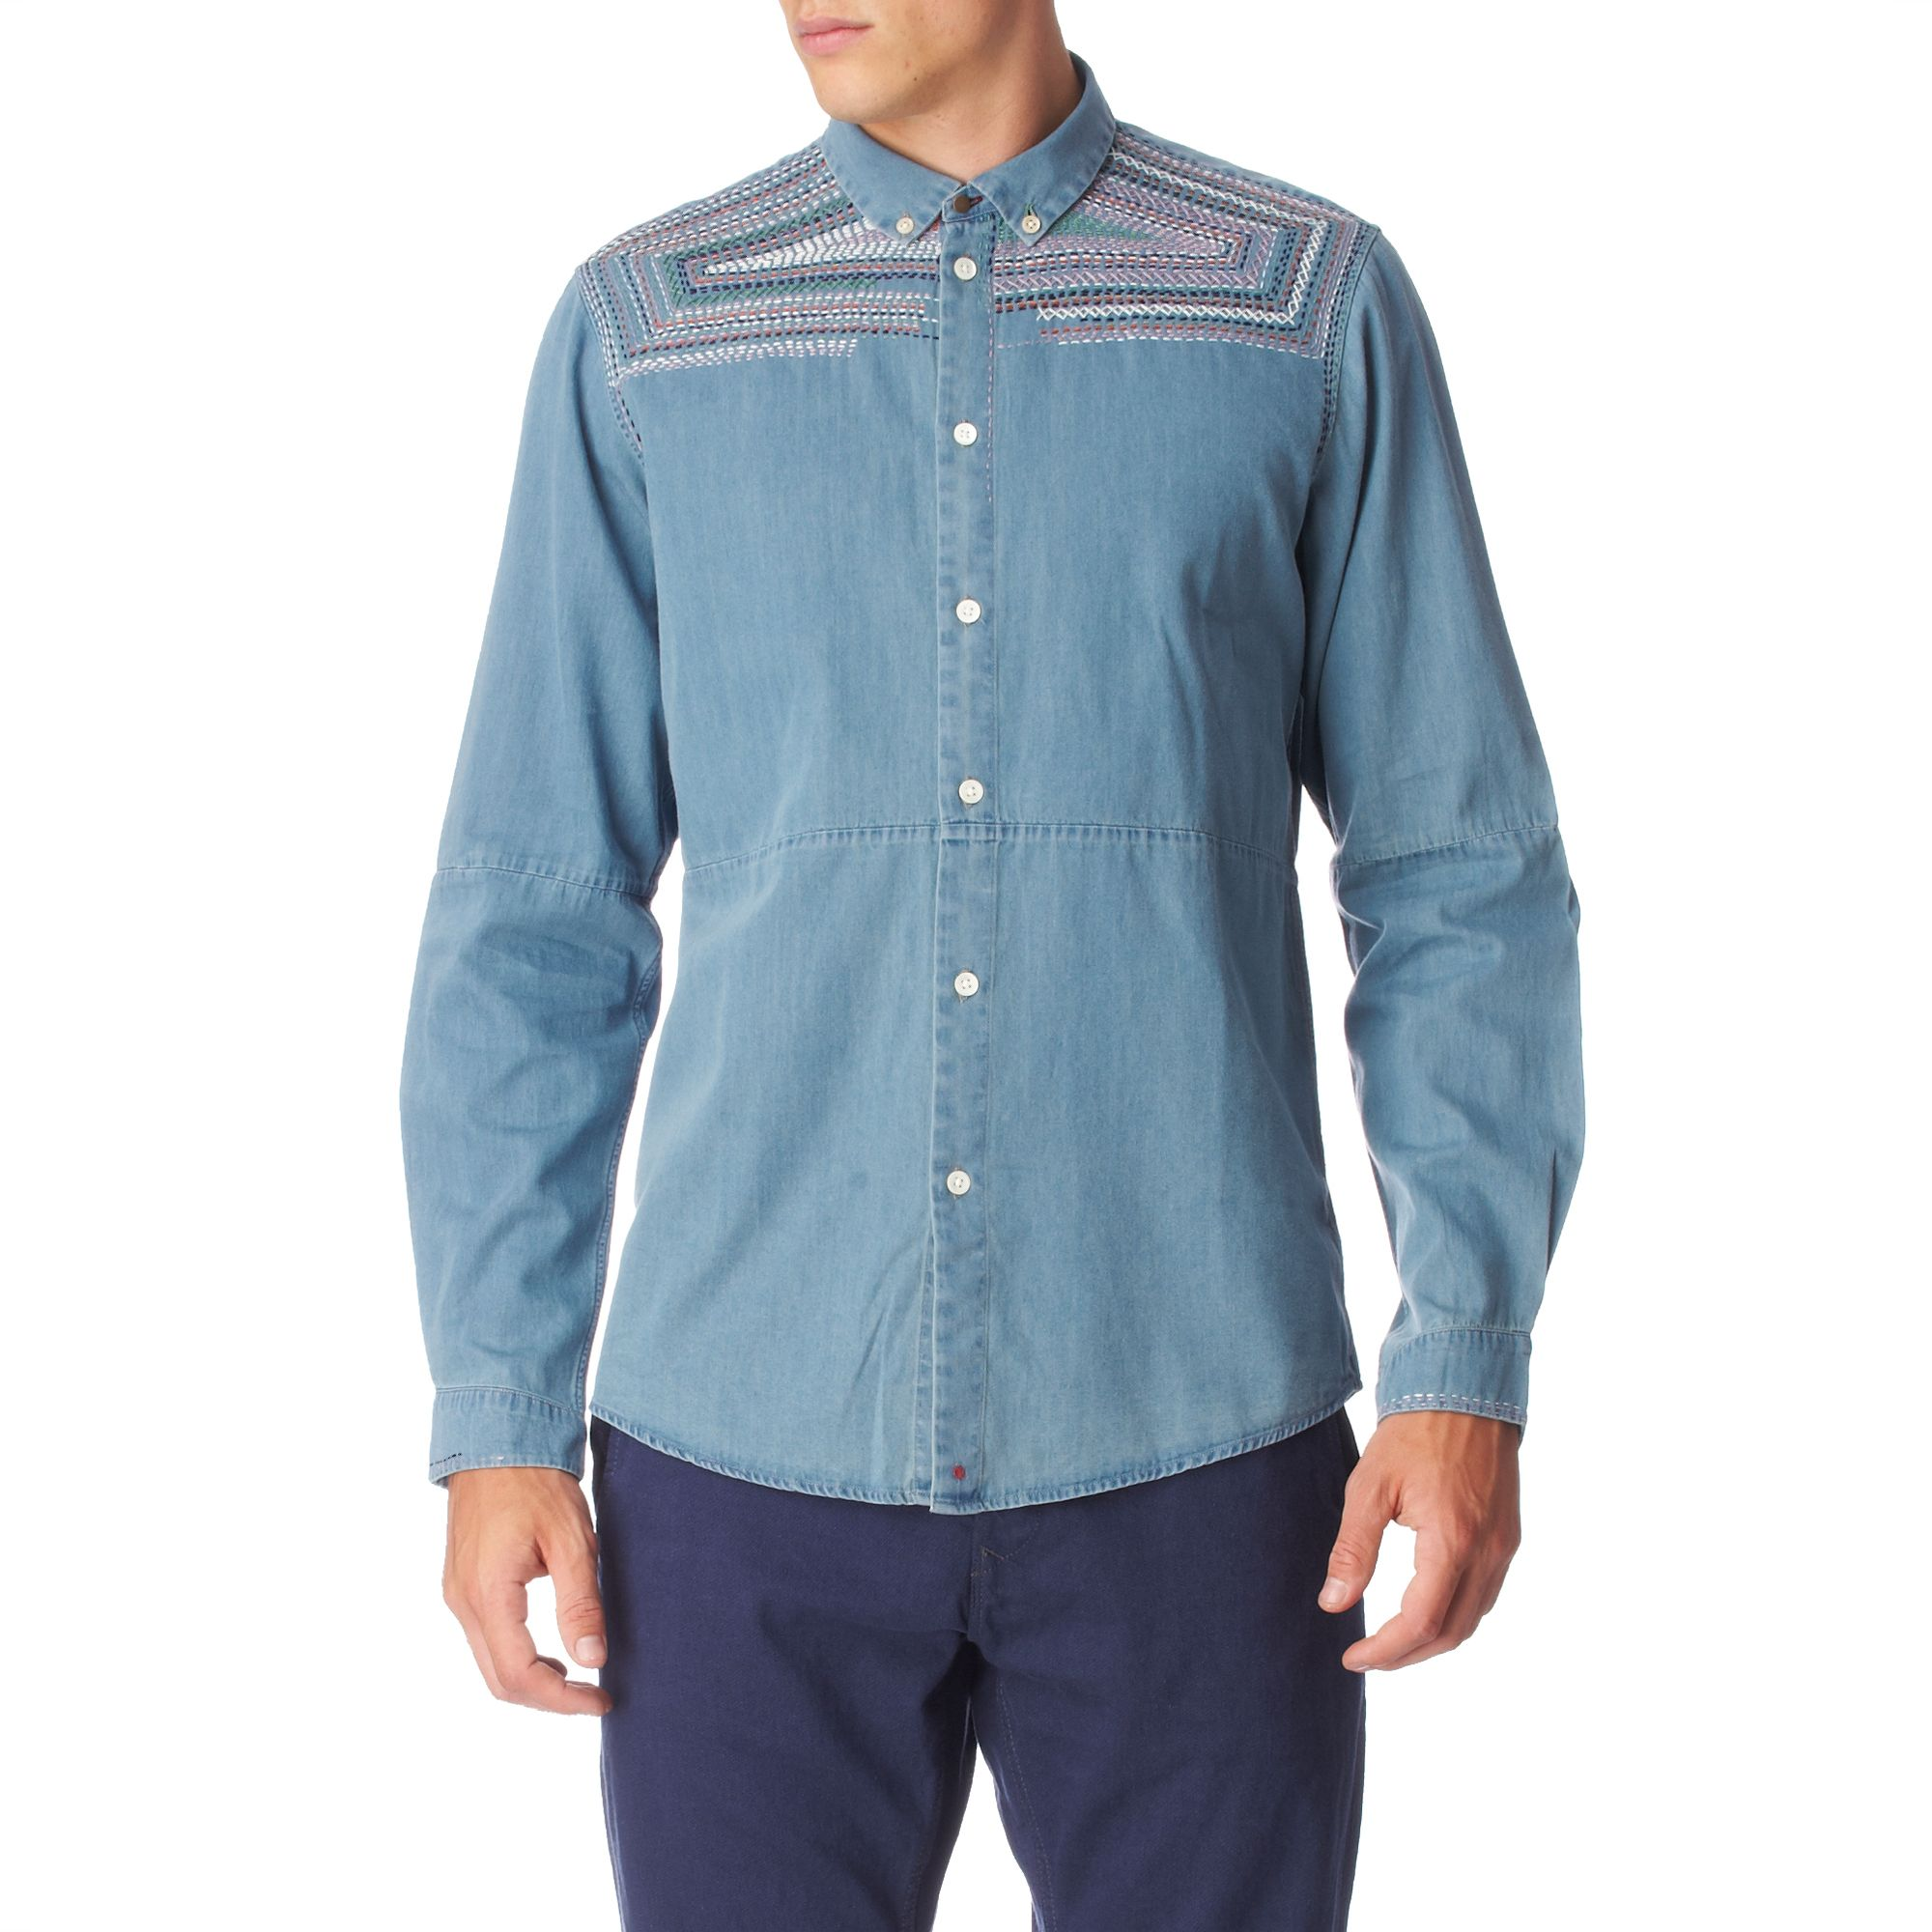 Paul smith embroidered slim fit single cuff shirt in blue for Single cuff dress shirt